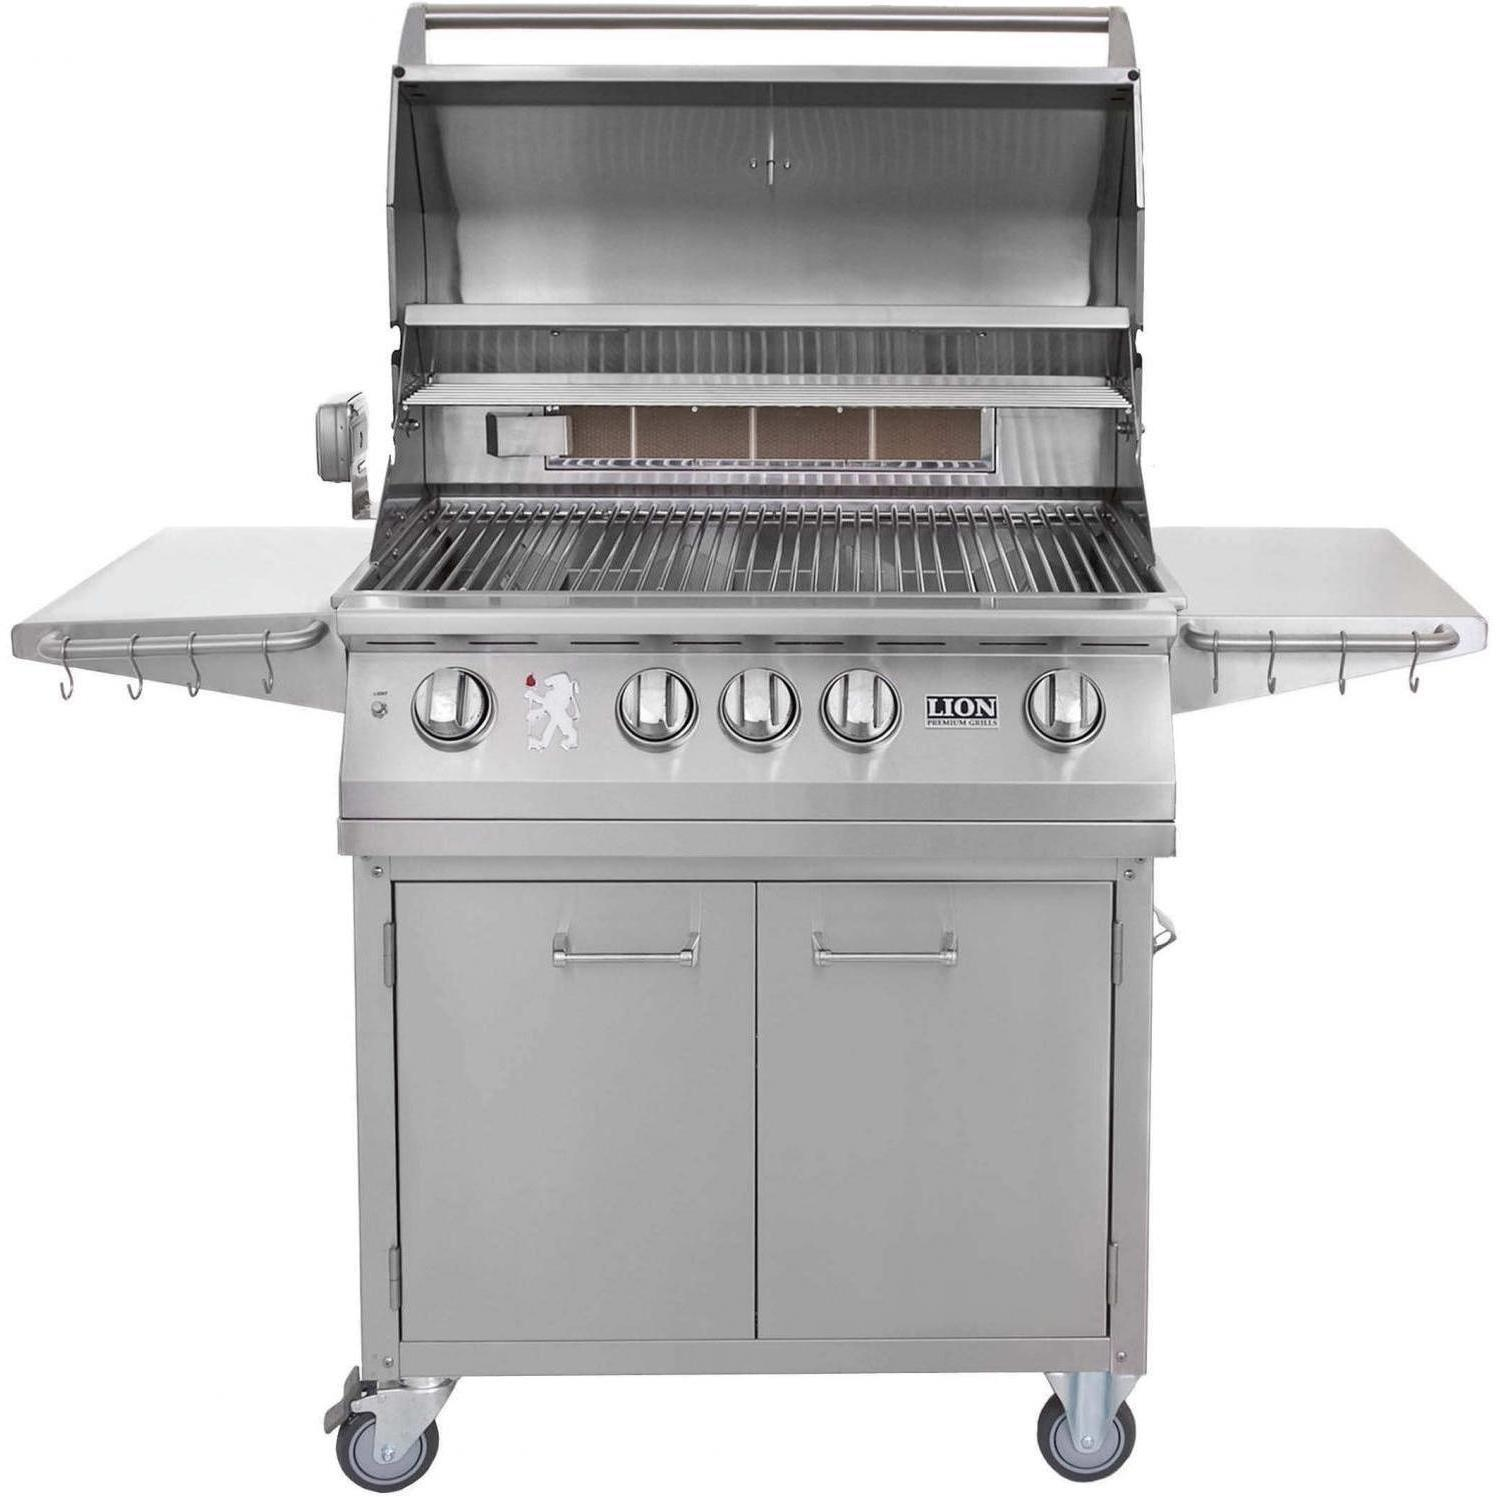 Lion 32 Inch 75625 + 53621 Stainless Steel Propane Gas Grill Review